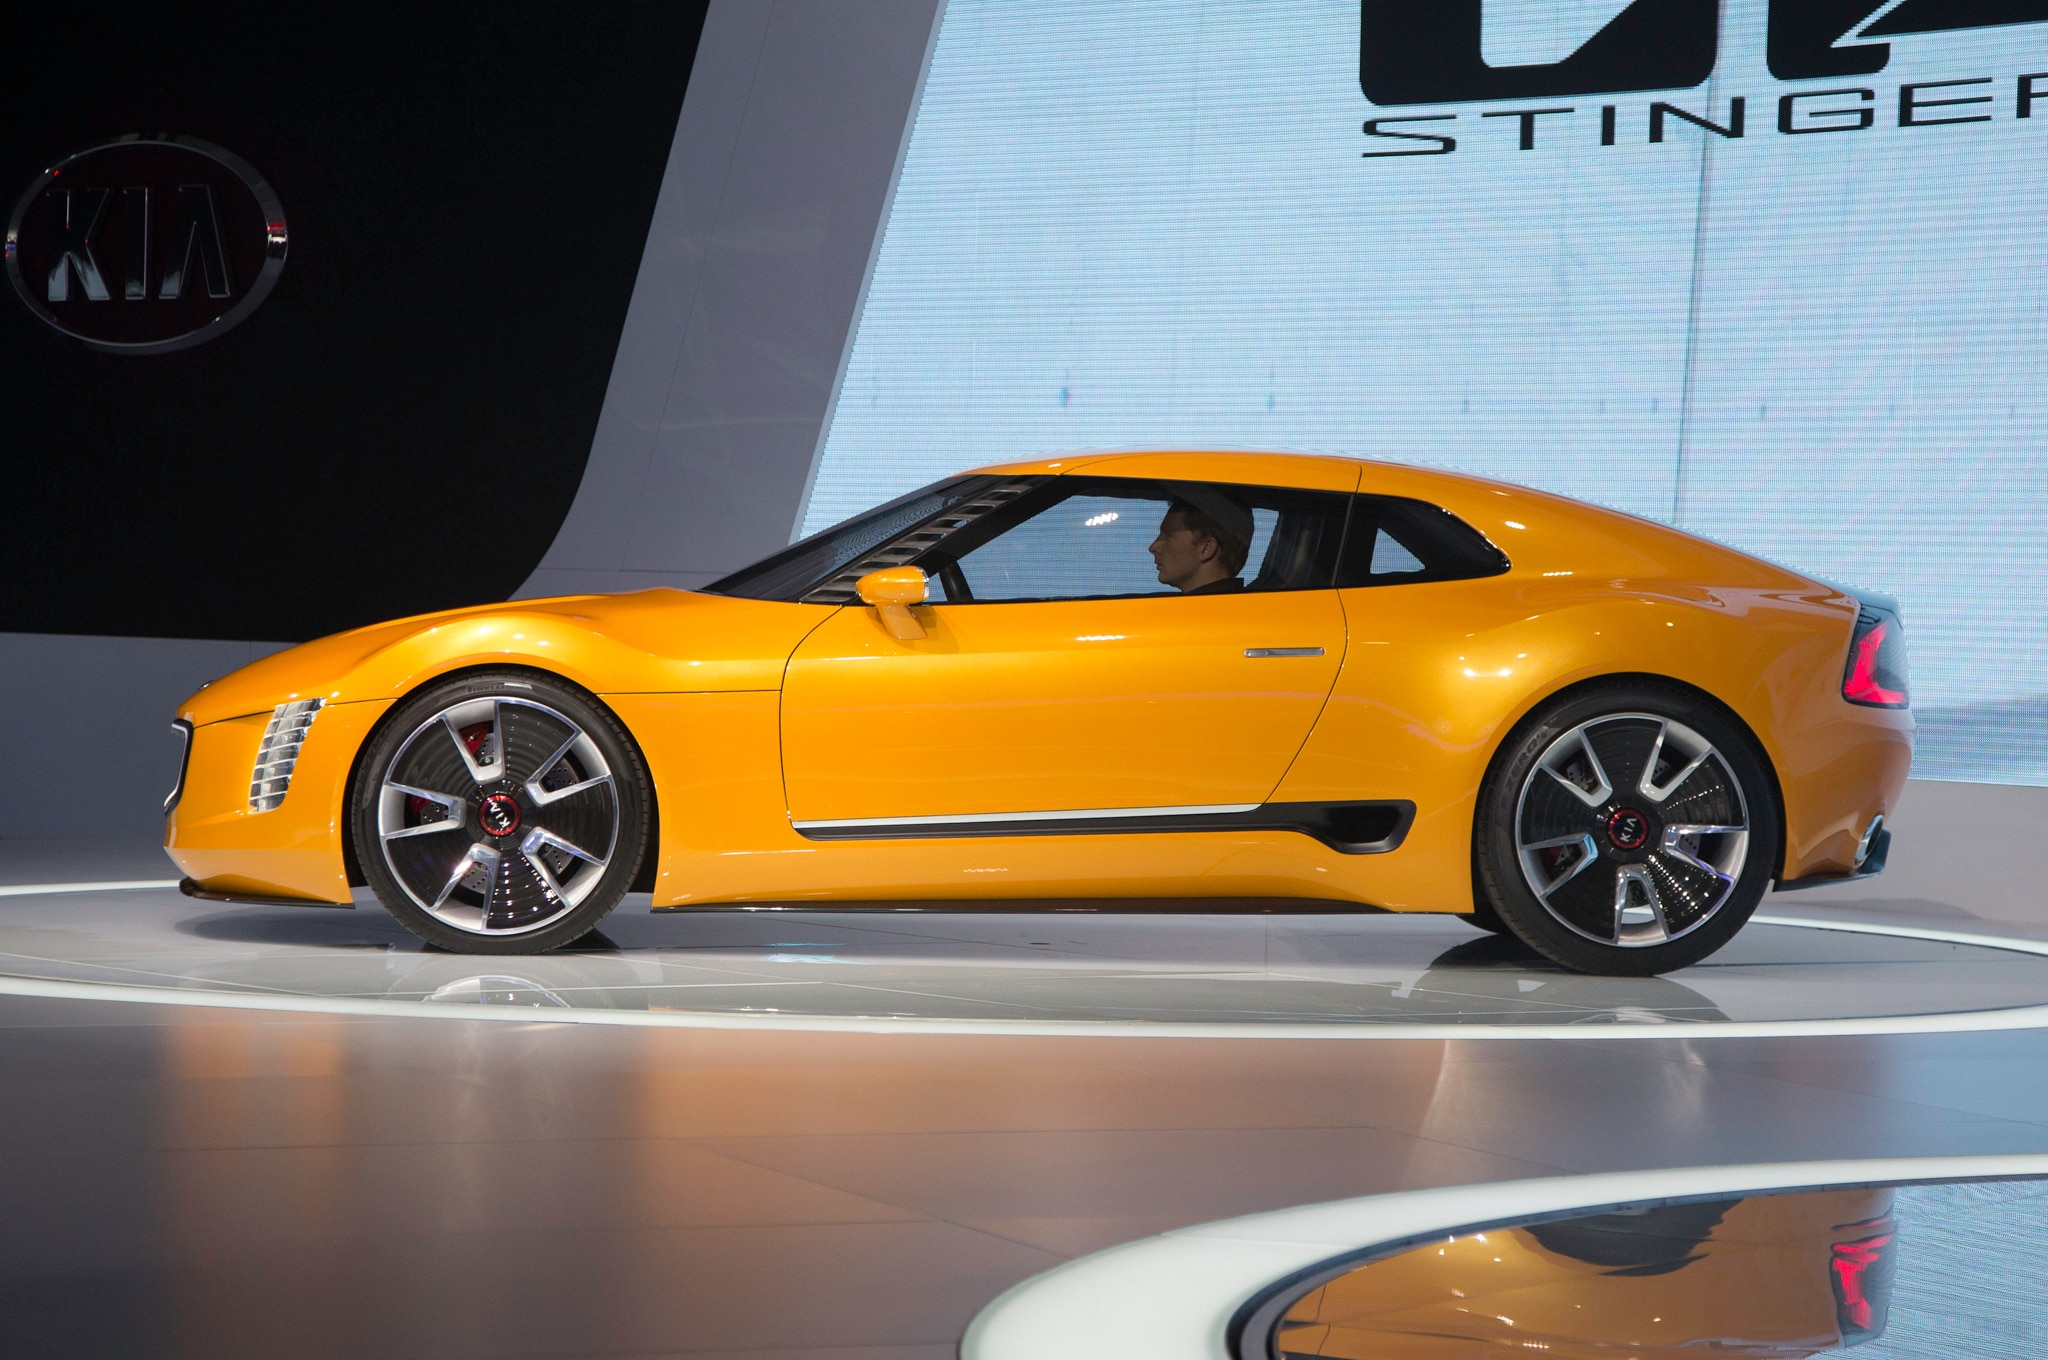 Report: Kia GT Sports Car Debuts This Year, Rio GT Hot Hatch in 2018